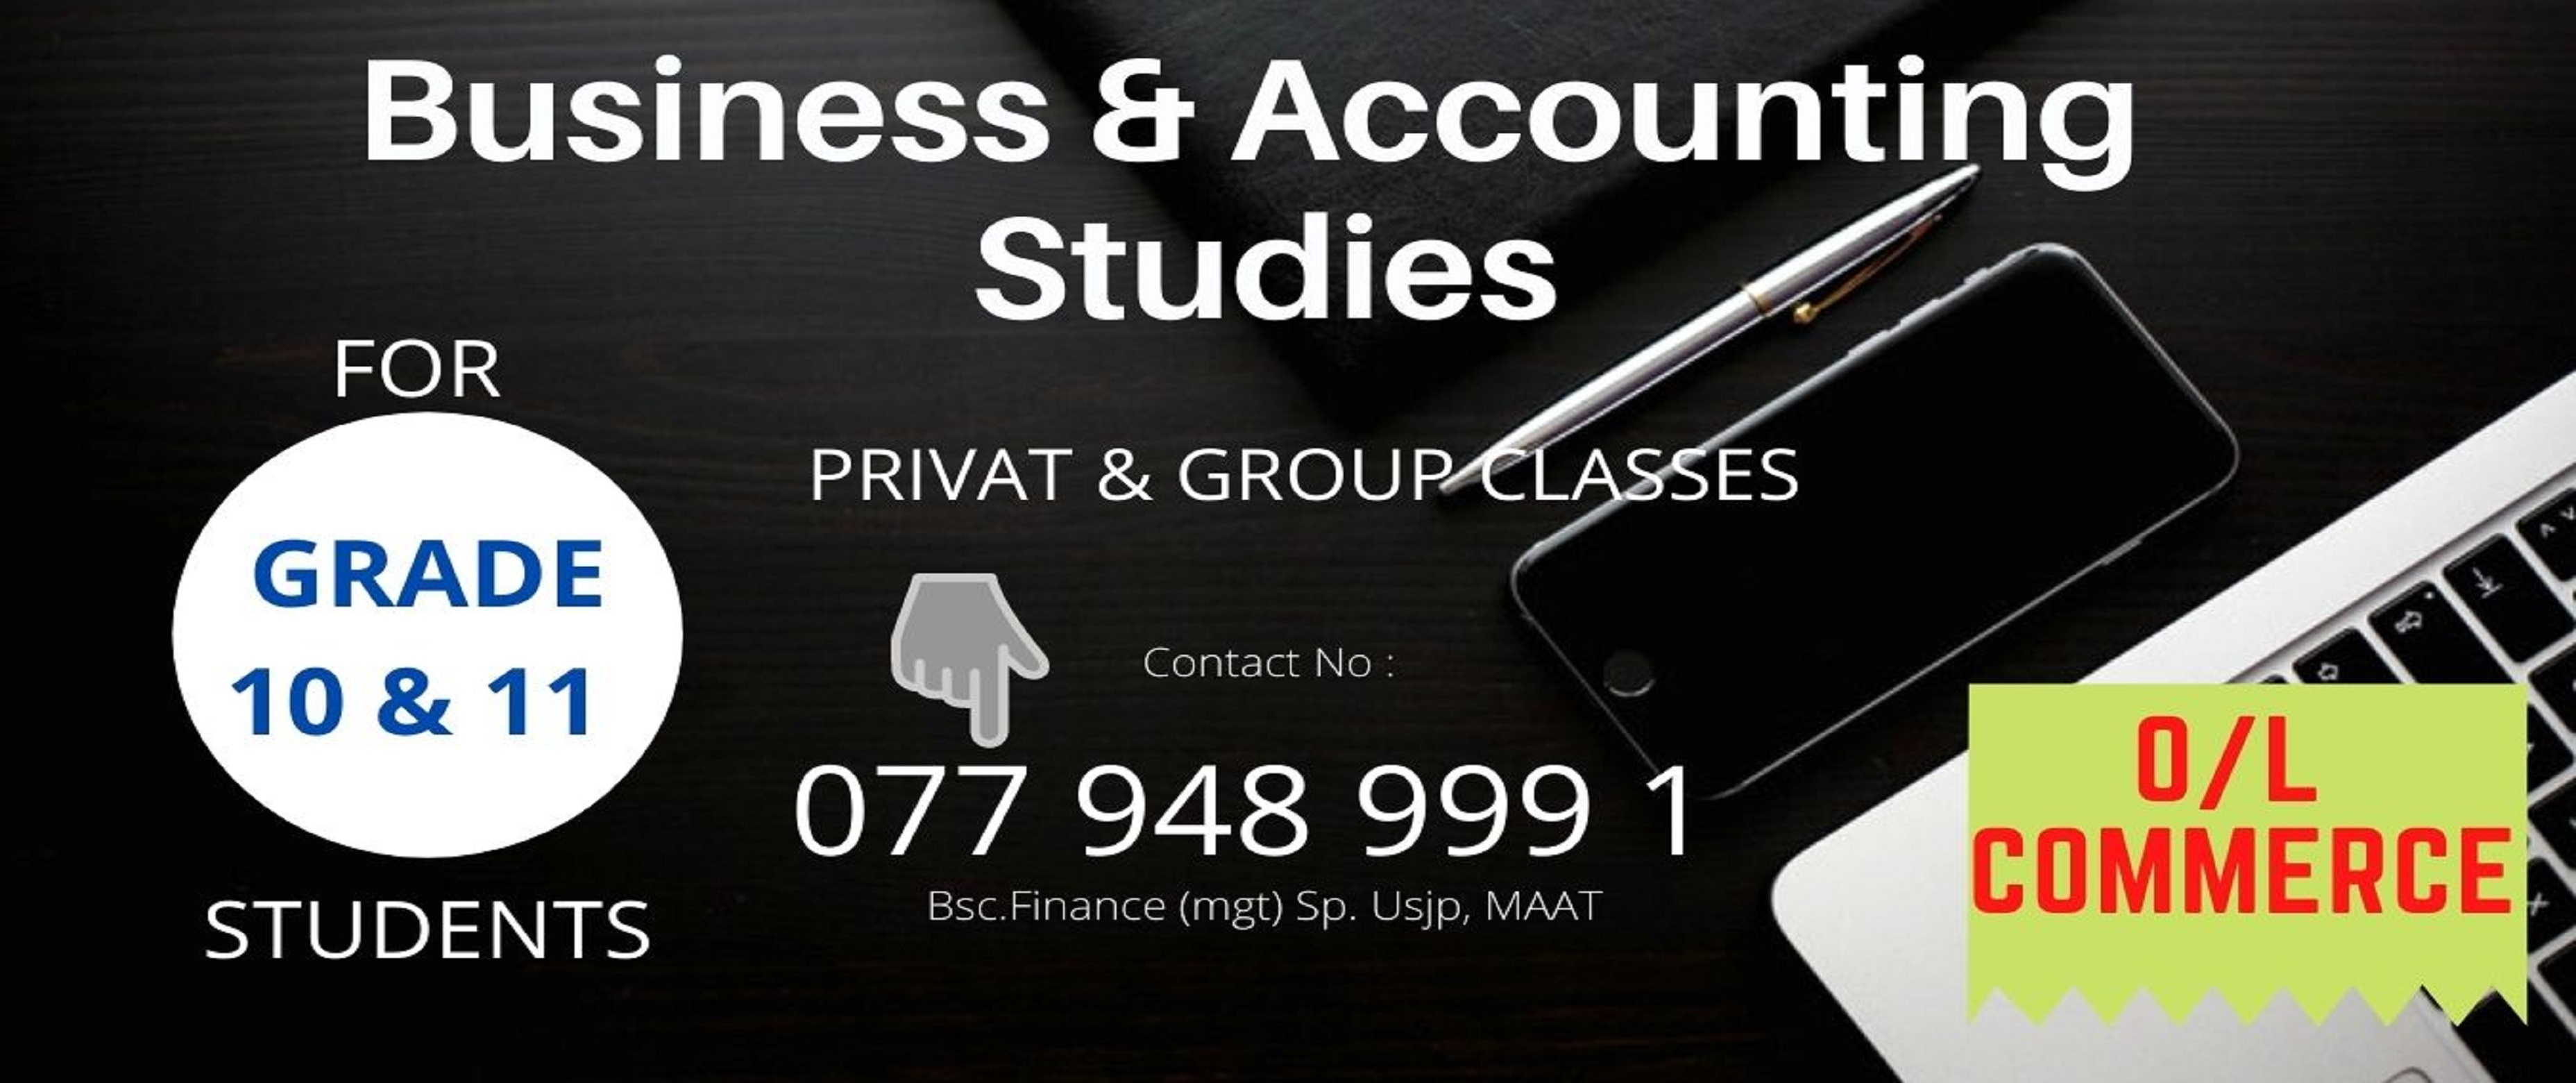 Grade 10 & 11 Business & Accounting Studies | O/L Commerce